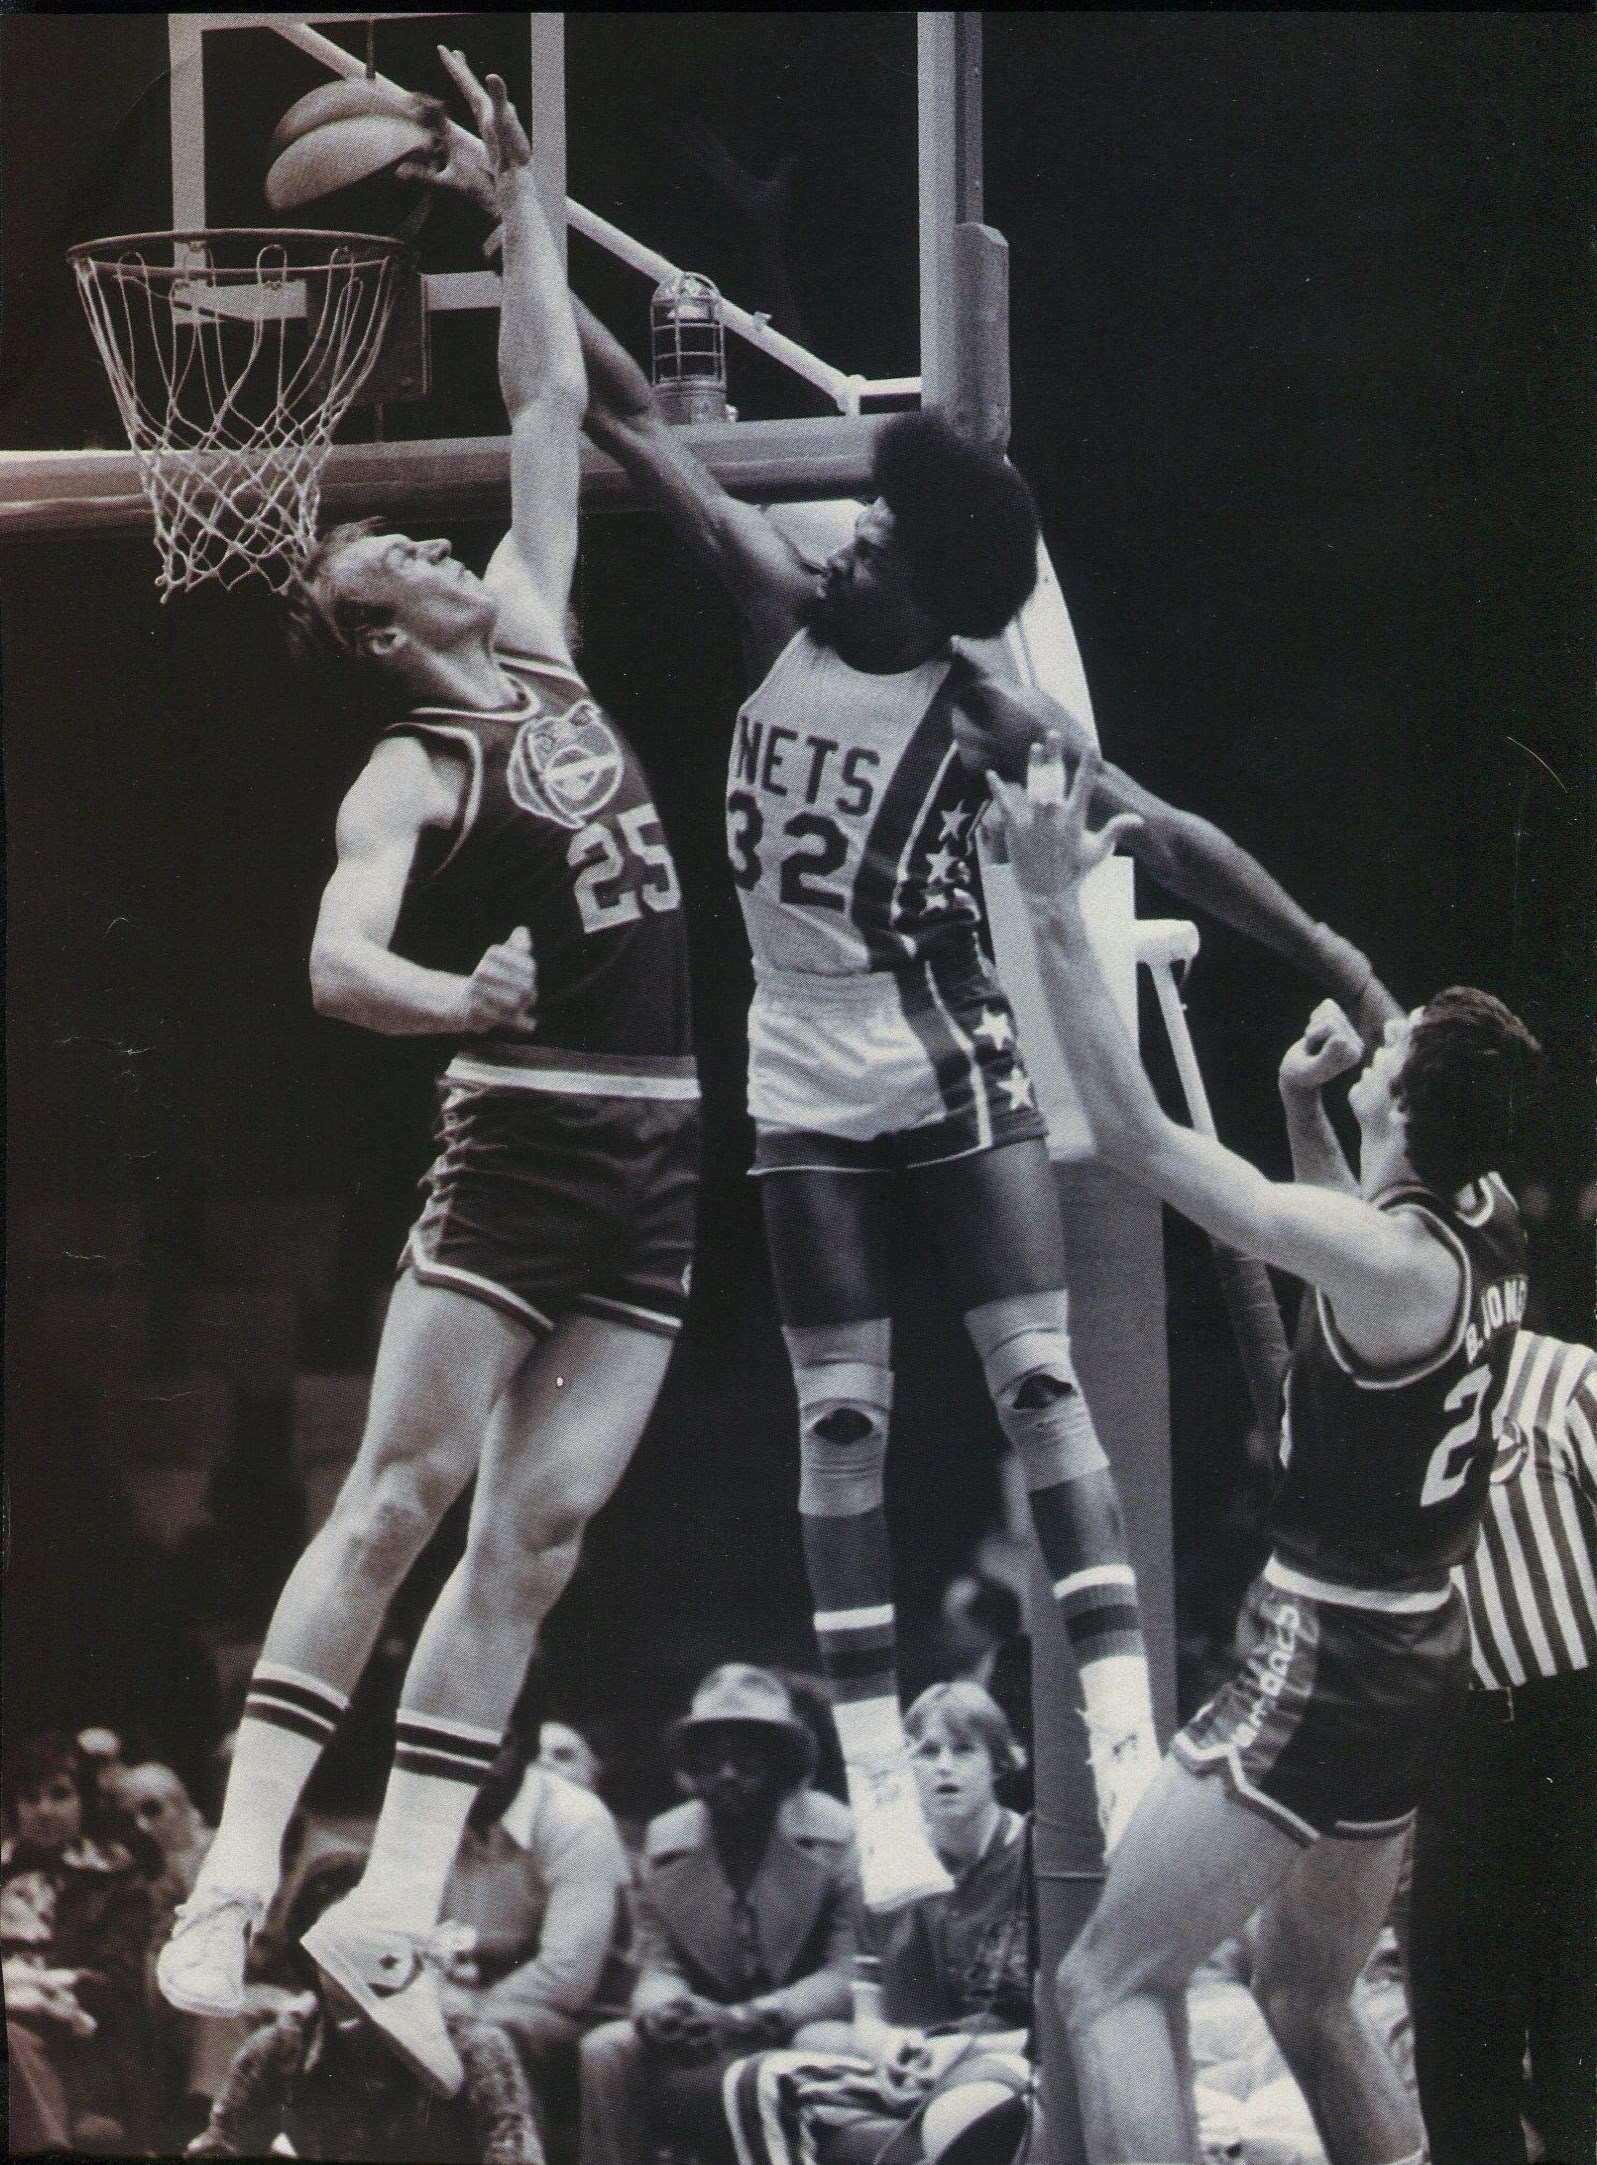 Nets 75-76 Home Julius Erving, Nuggets.jpg